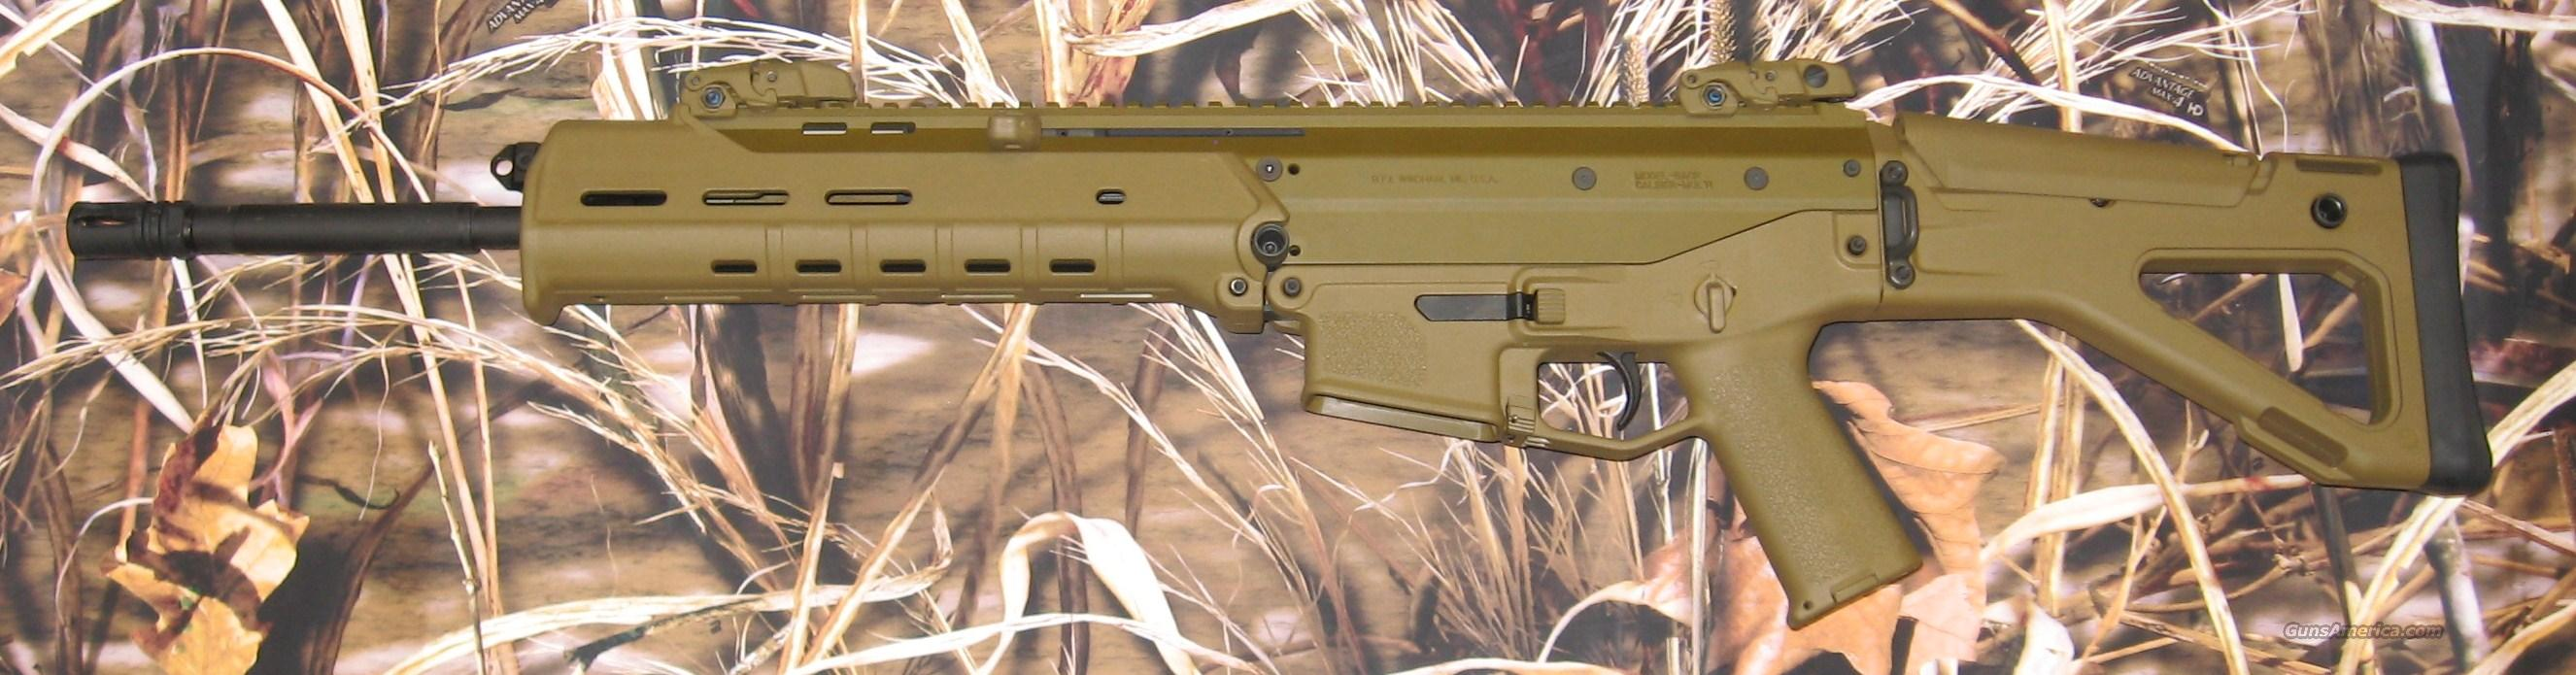 Bushmaster BACR Flat Dark Earth  Guns > Rifles > Bushmaster Rifles > Complete Rifles